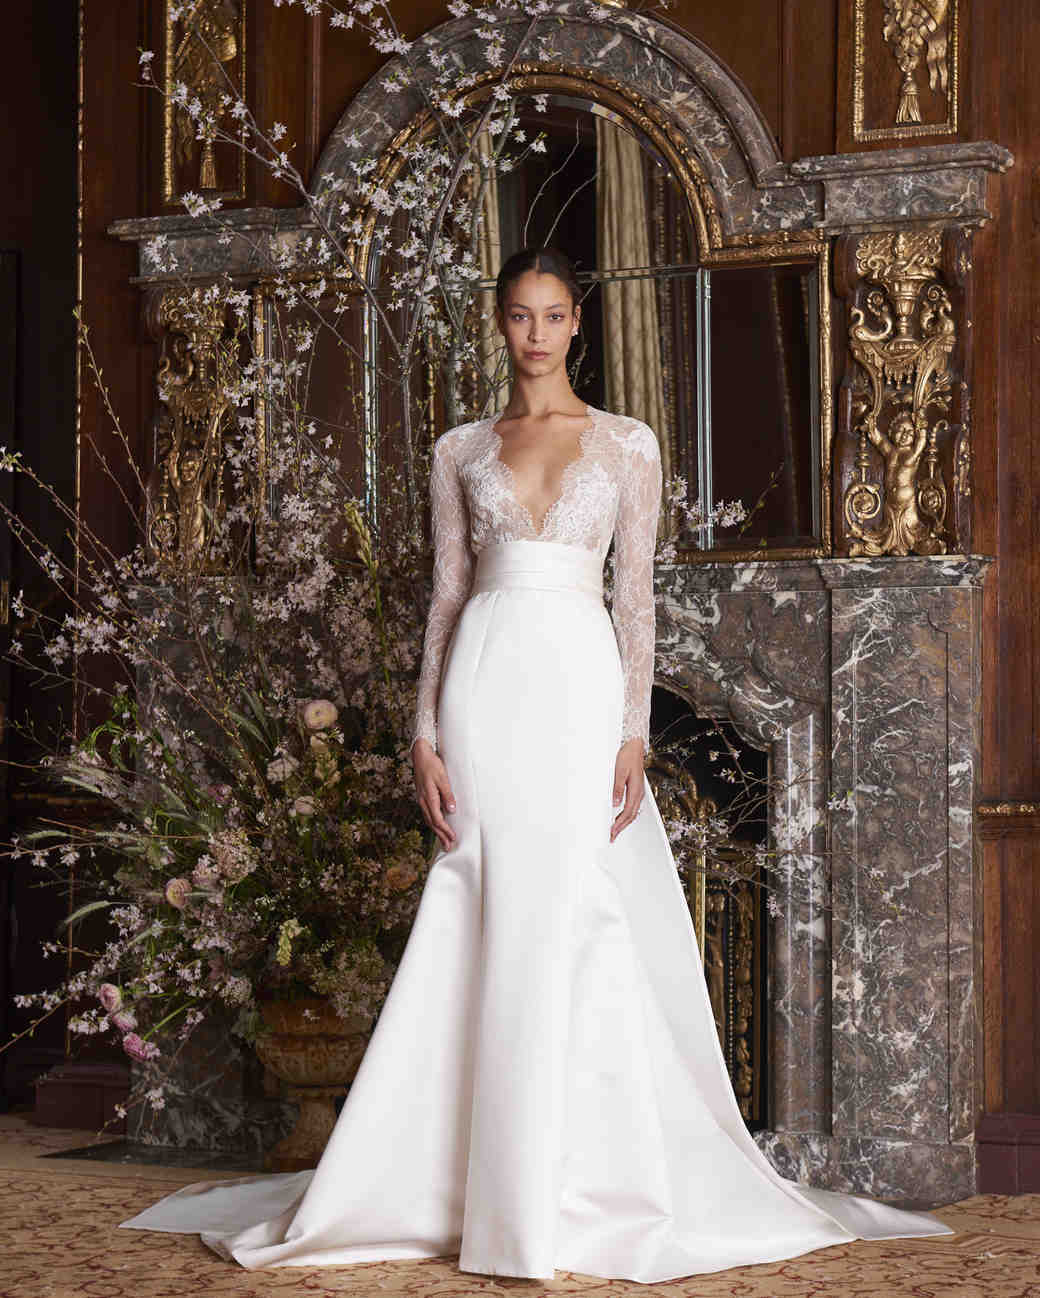 Sophia Tolli Bridal Spring 2019: Monique Lhuillier Spring 2019 Wedding Dress Collection